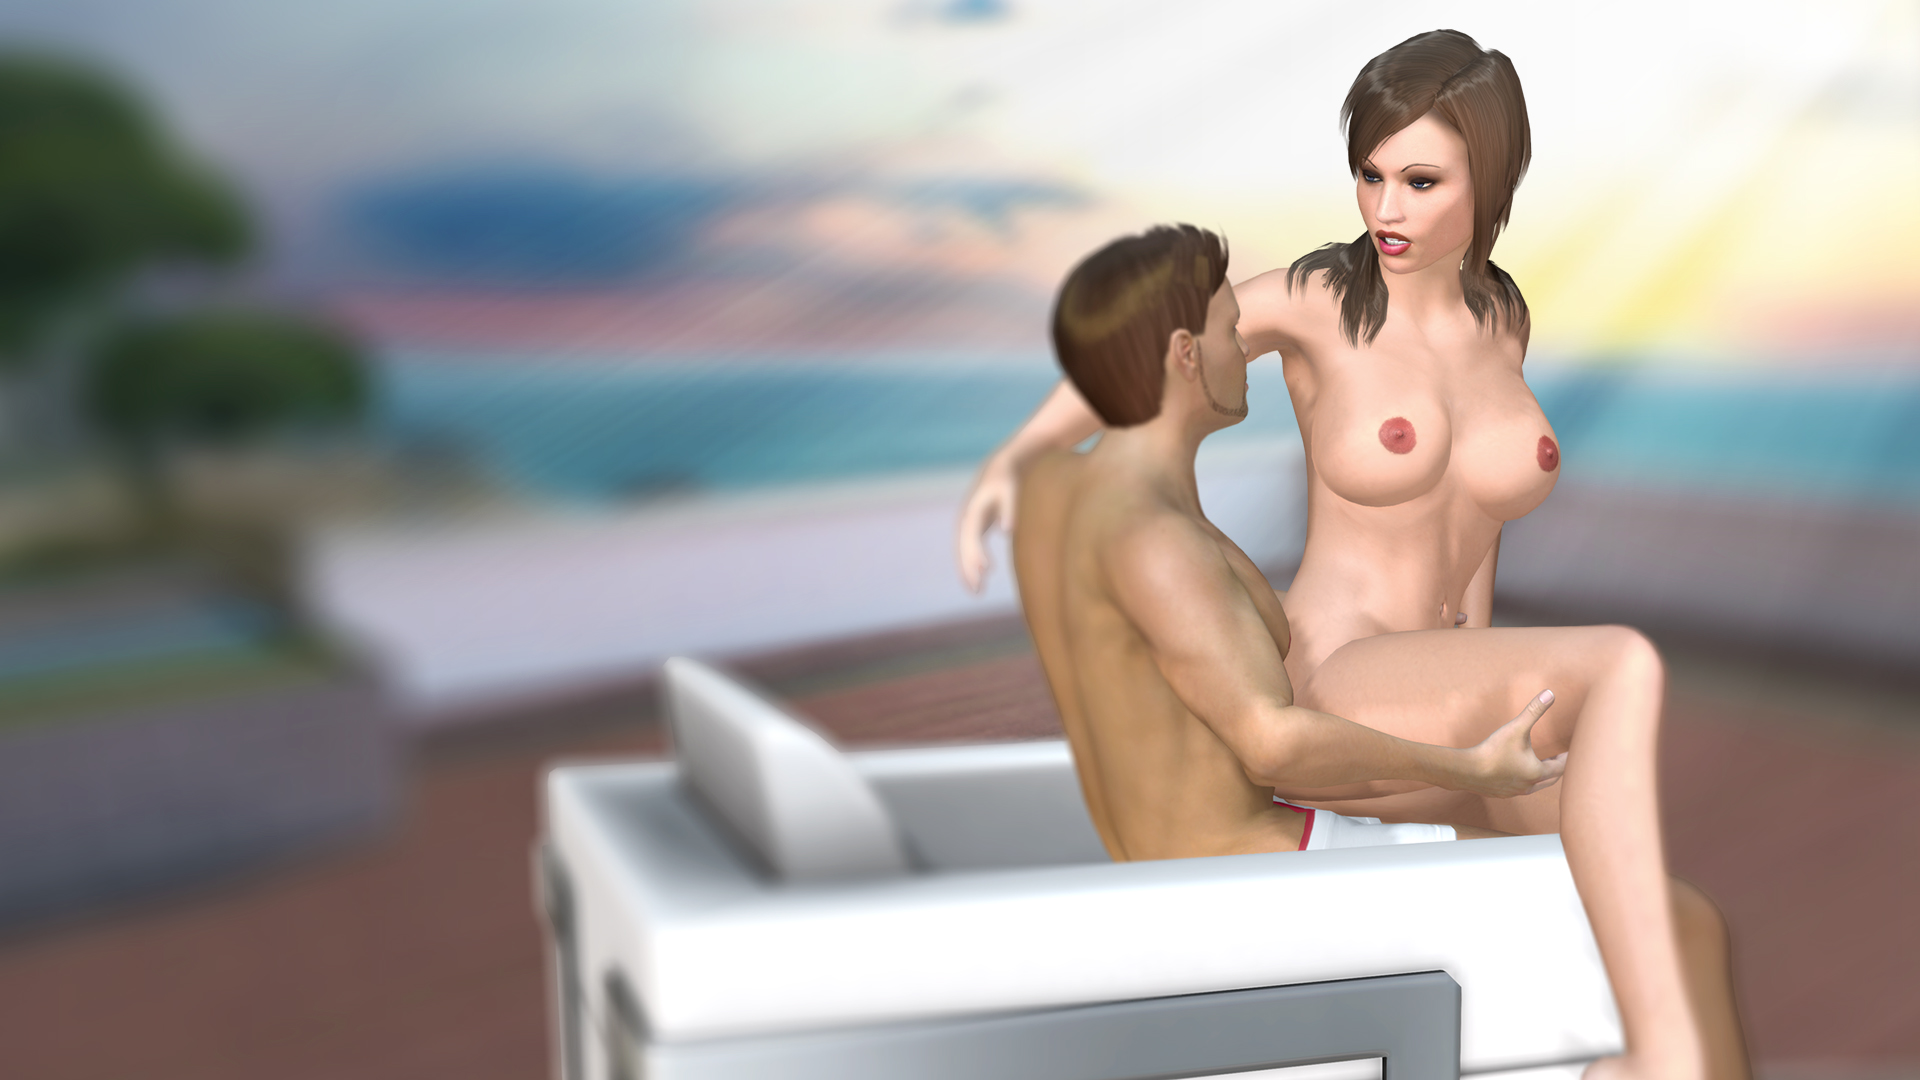 Playboy mansion game nude sexual pussy